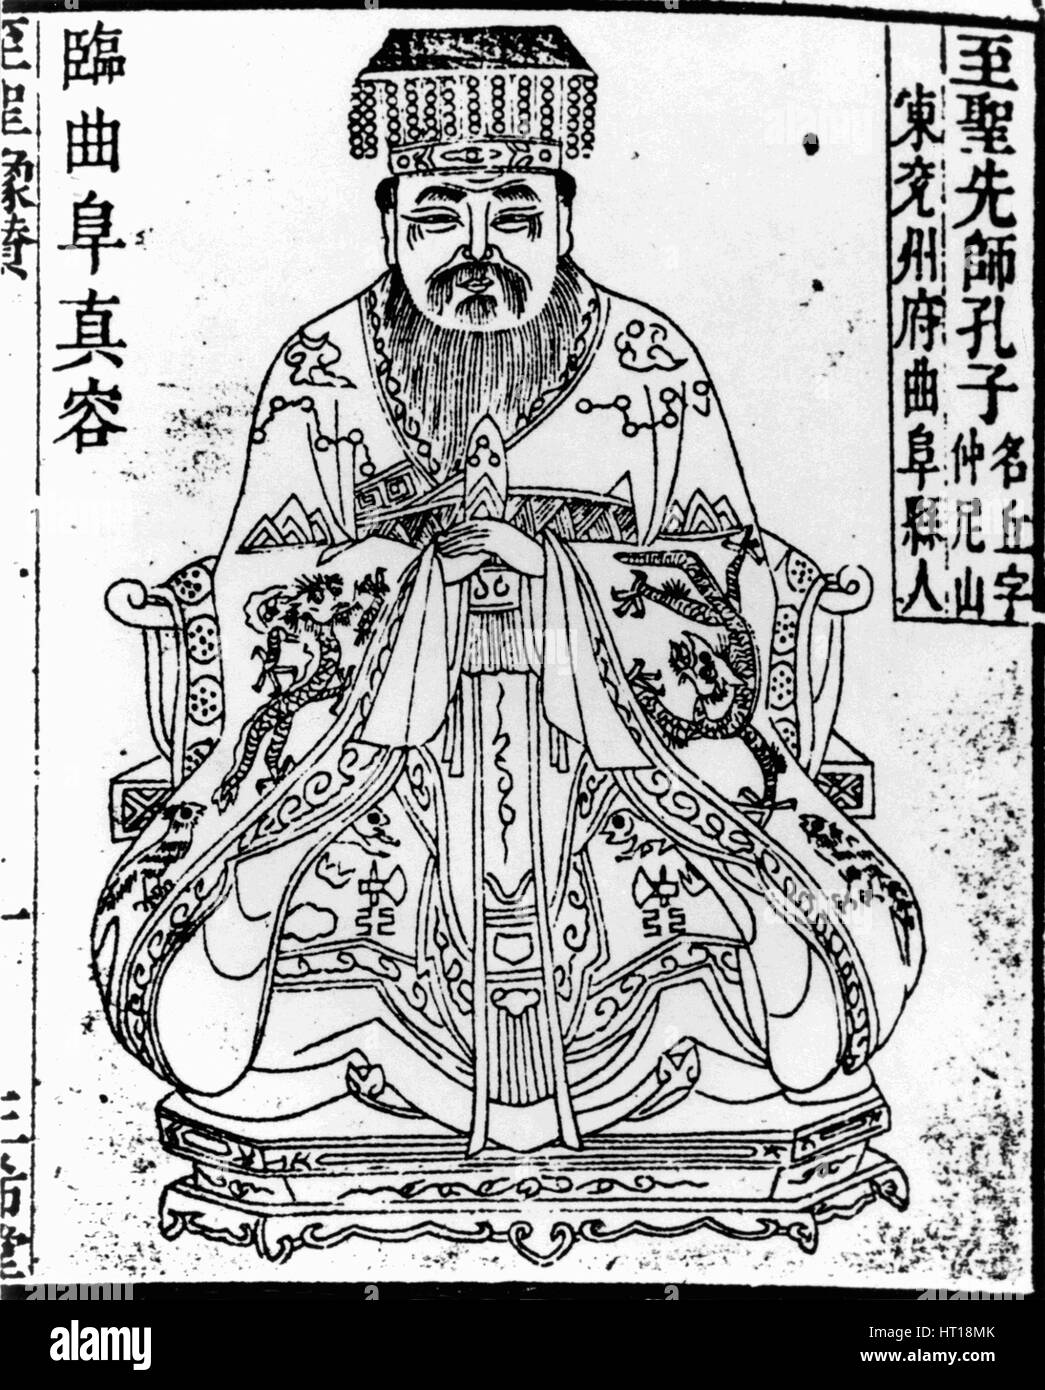 Portrait of the Chinese thinker and social philosopher Confucius, 1836-1837. Artist: Anonymous - Stock Image